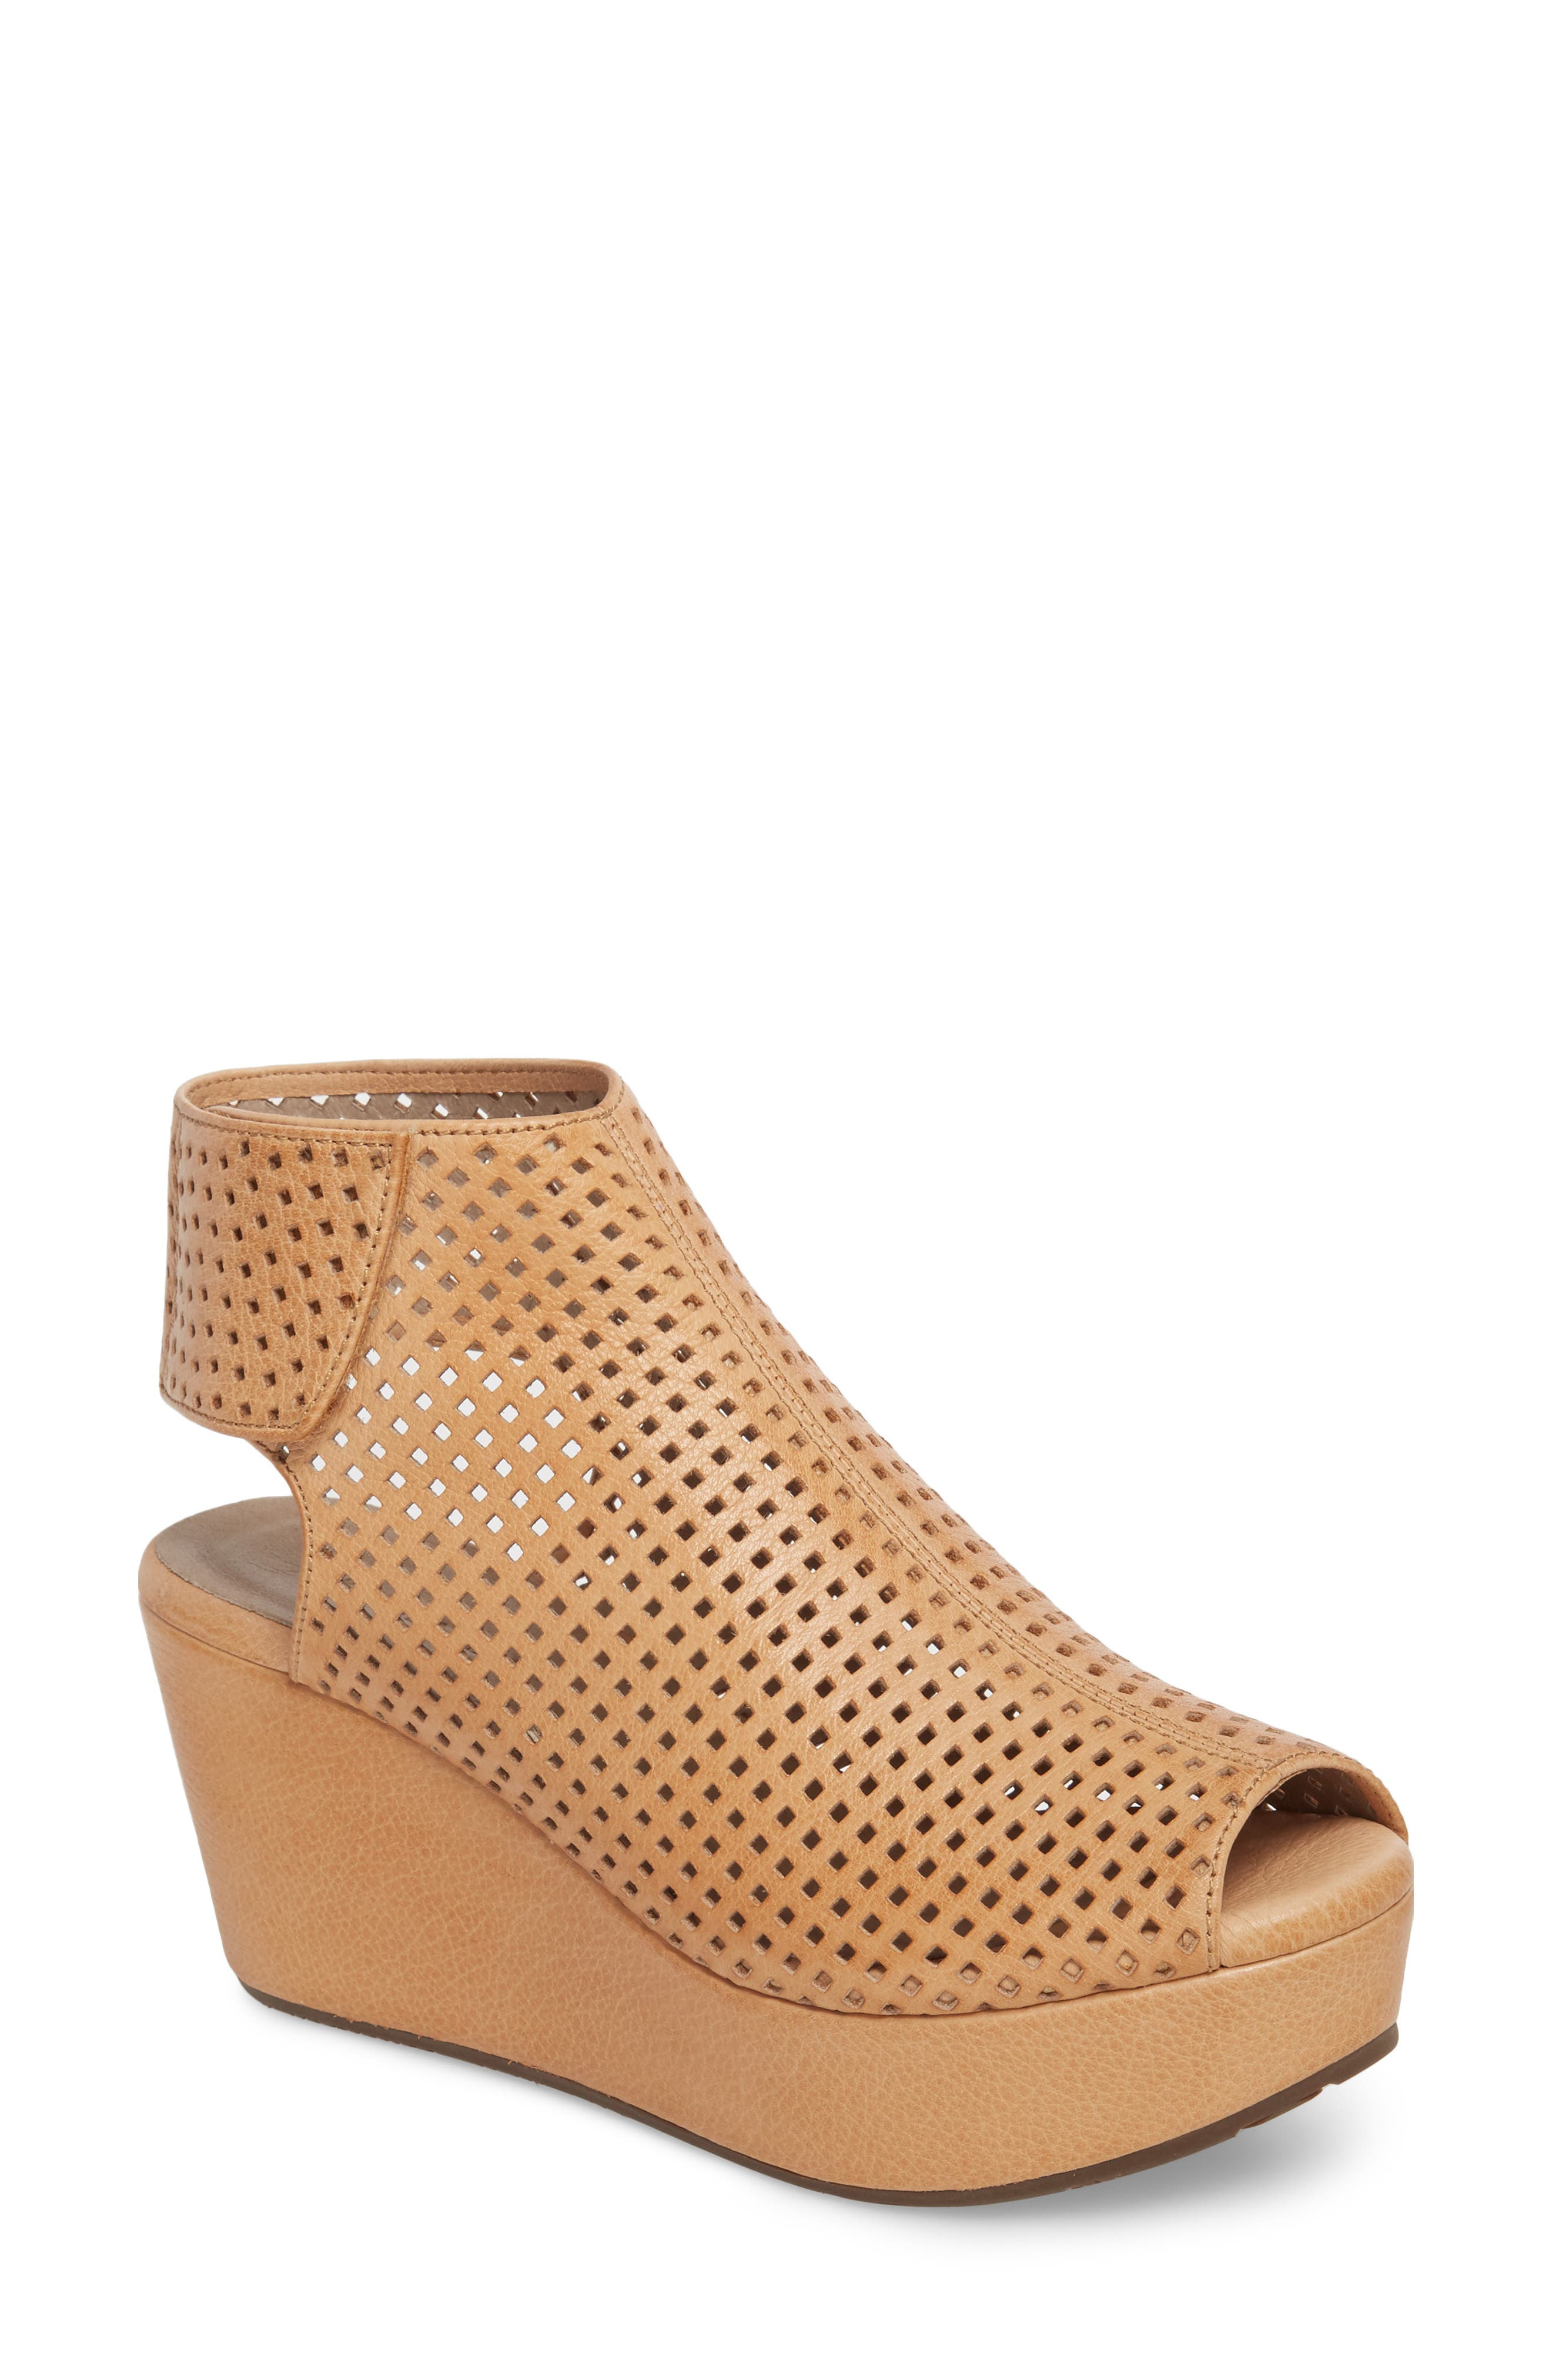 Wing Perforated Platform Wedge,                         Main,                         color, 200